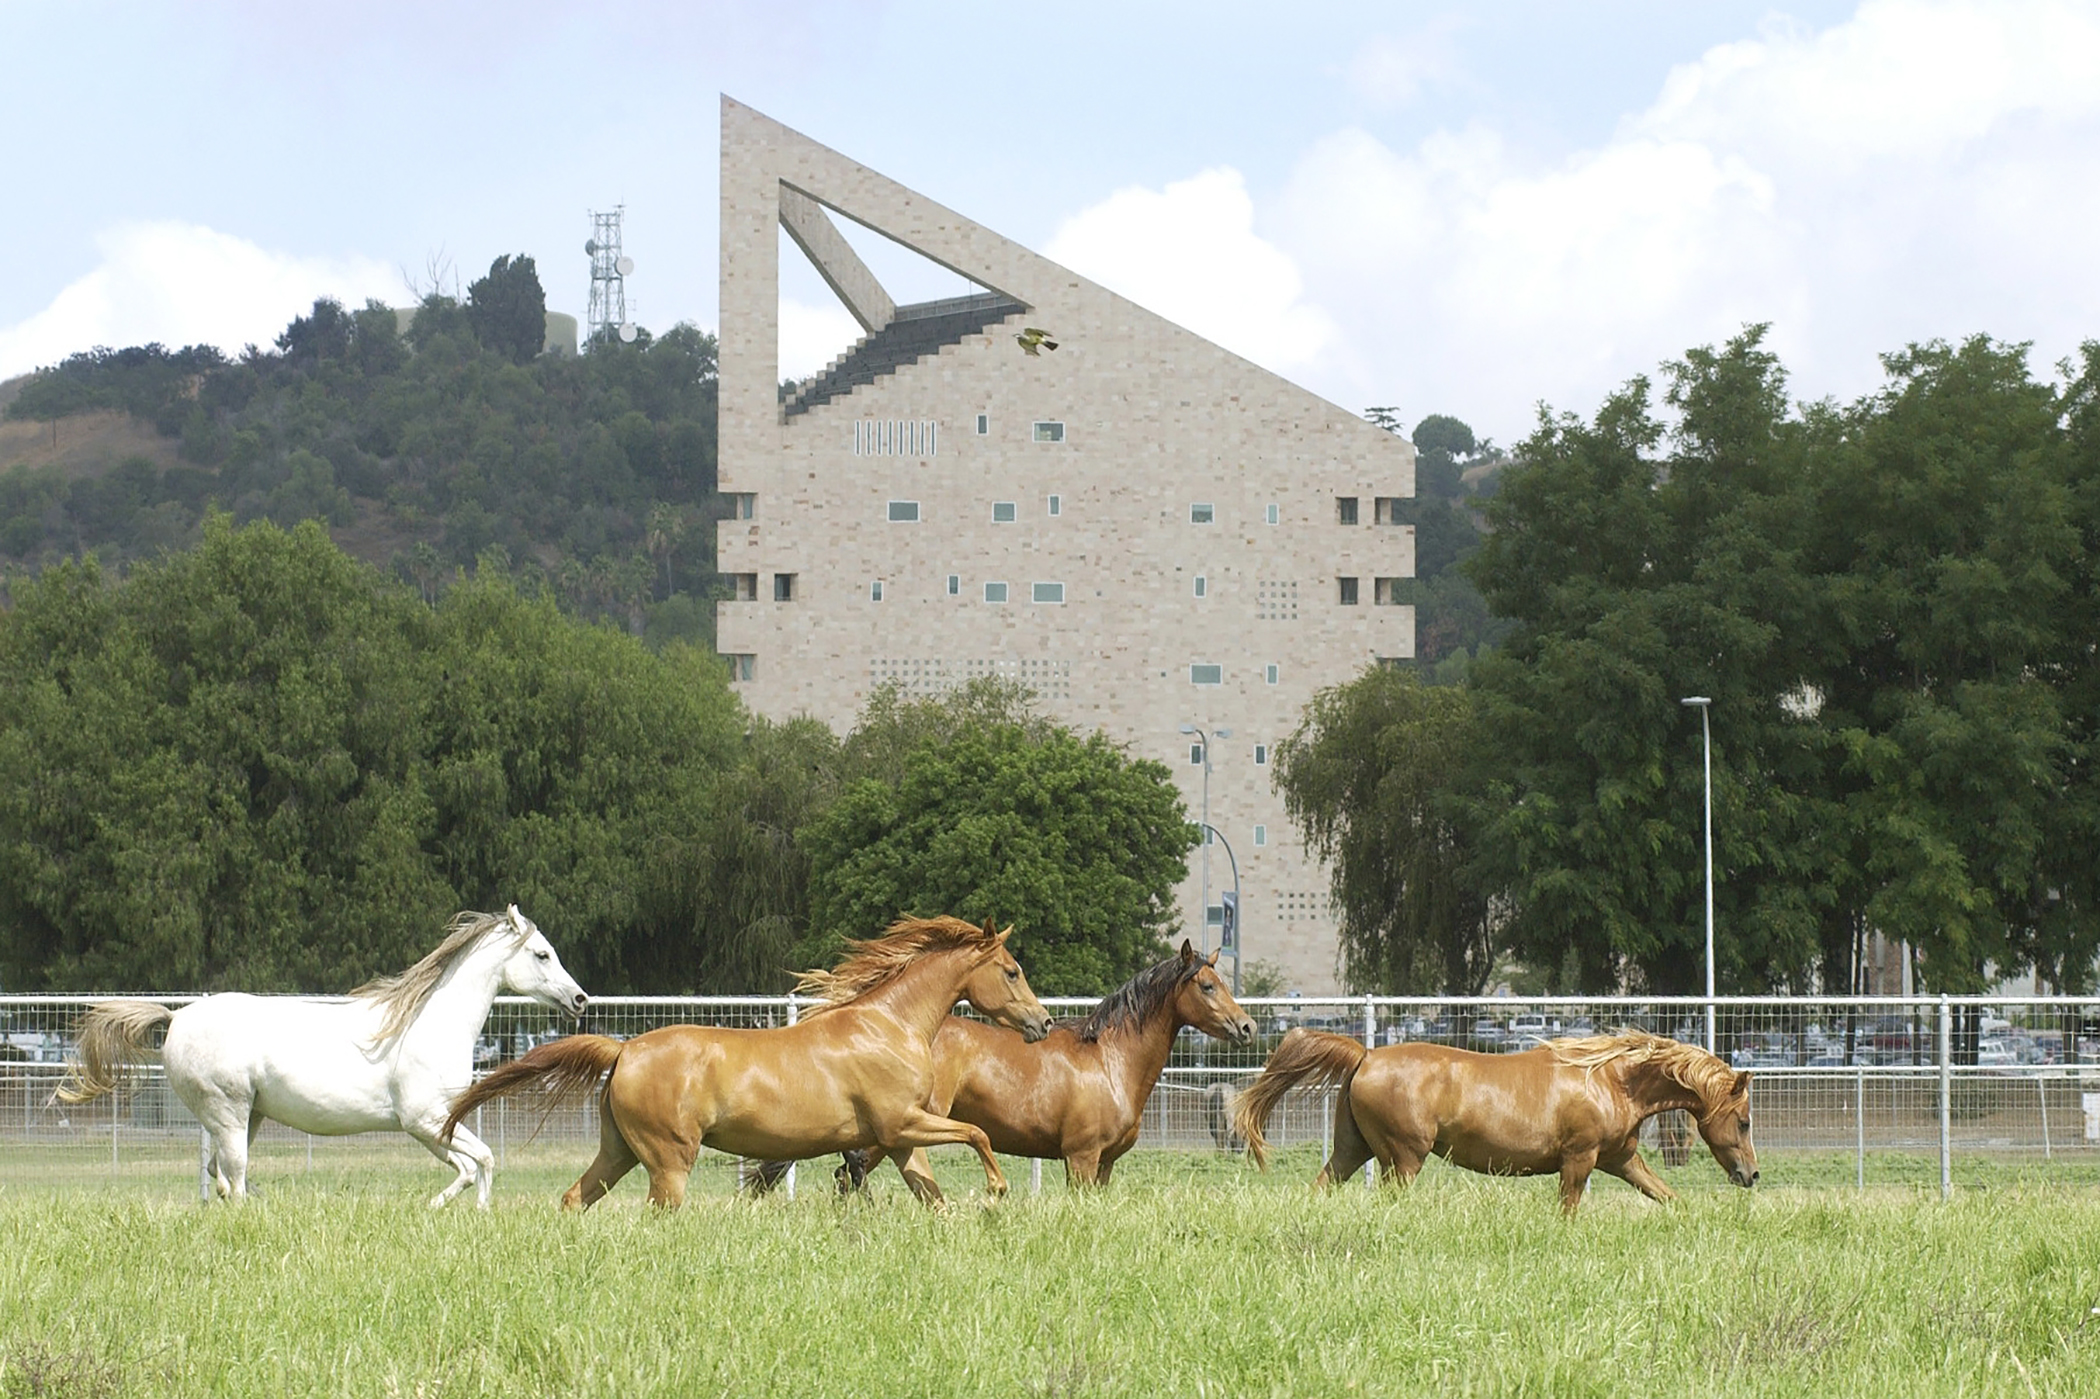 Running mares CLA-Arabian mares gallop in a pasture near the CLA building at Cal Poly Pomona.